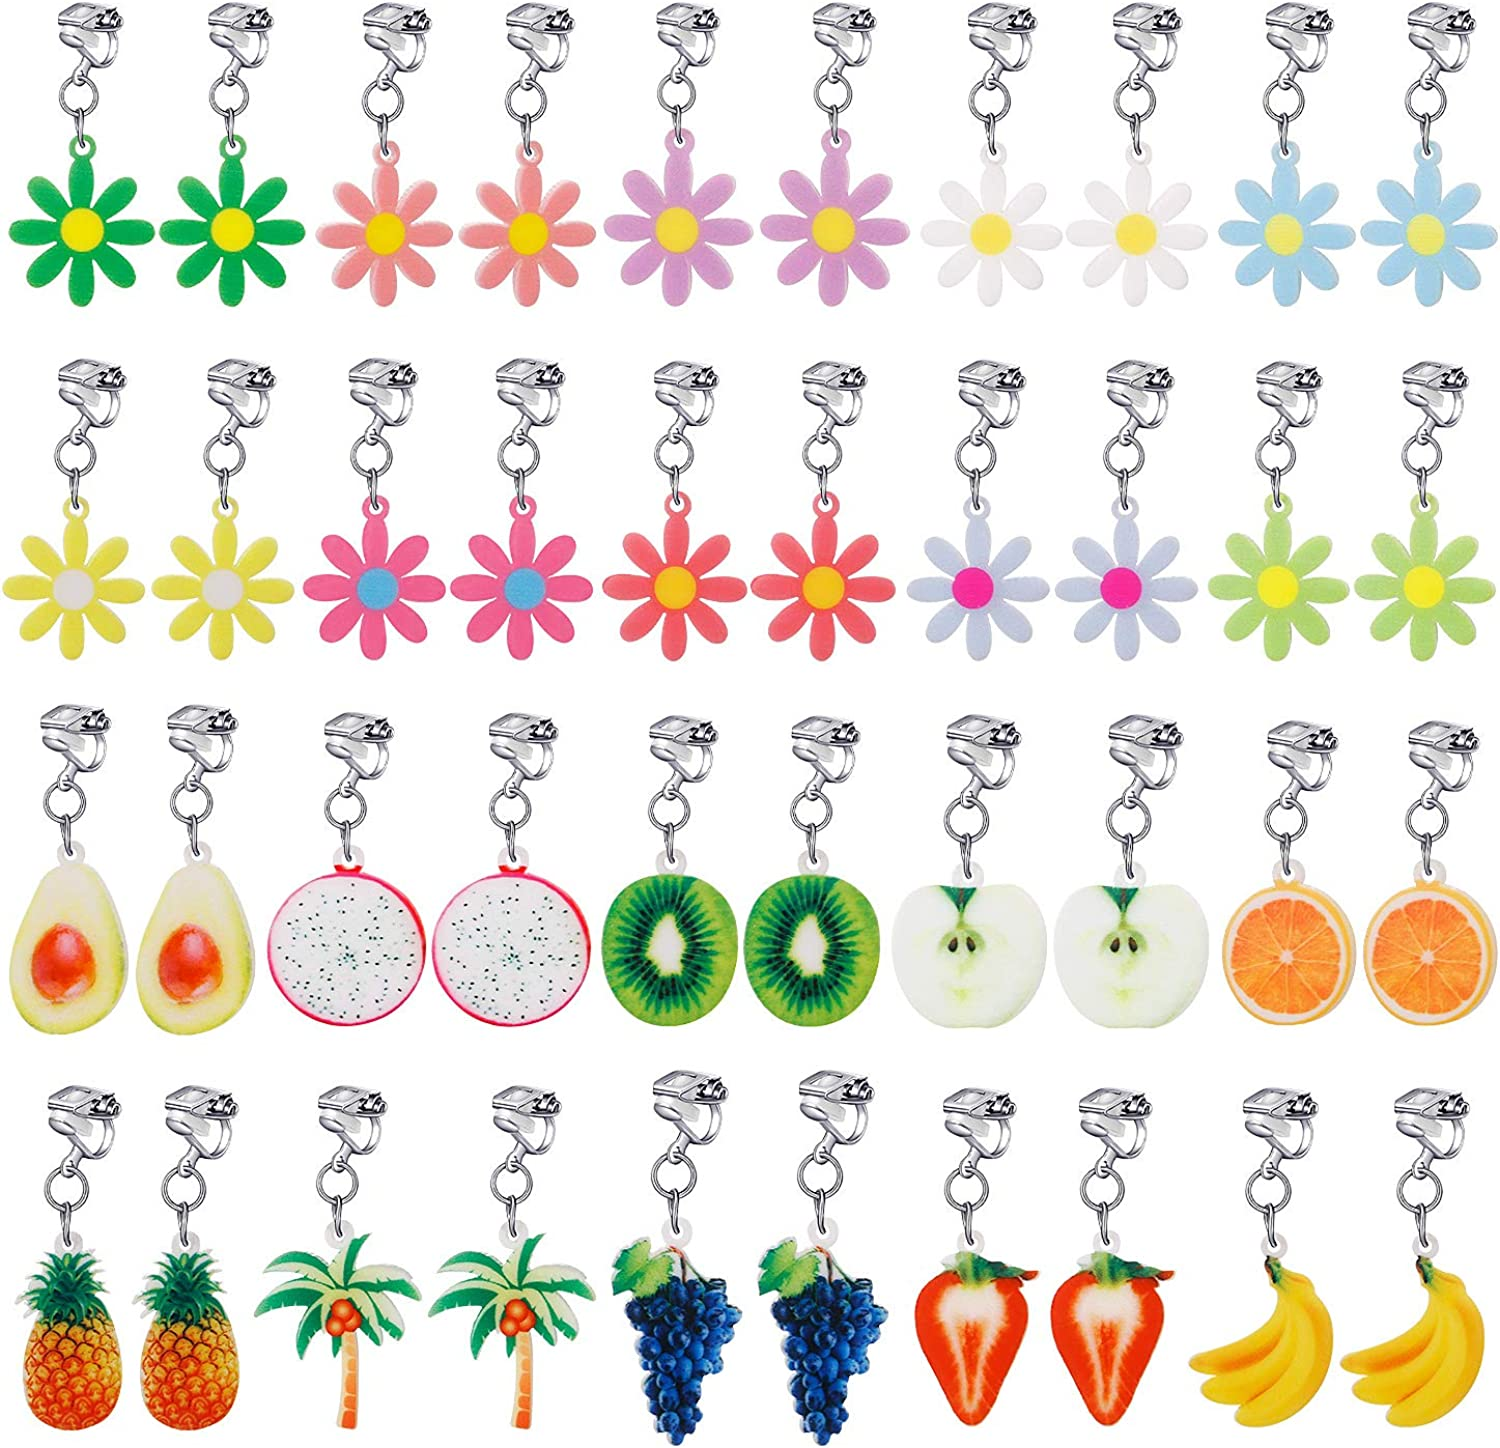 20 Pairs Clip on Earrings Princess Play Jewelry Earrings Set Mermaid Clipons Unicorn Clipon Earring Lollipop Ice Cream Dangle earring Rainbow Eardrop for little girls Toys